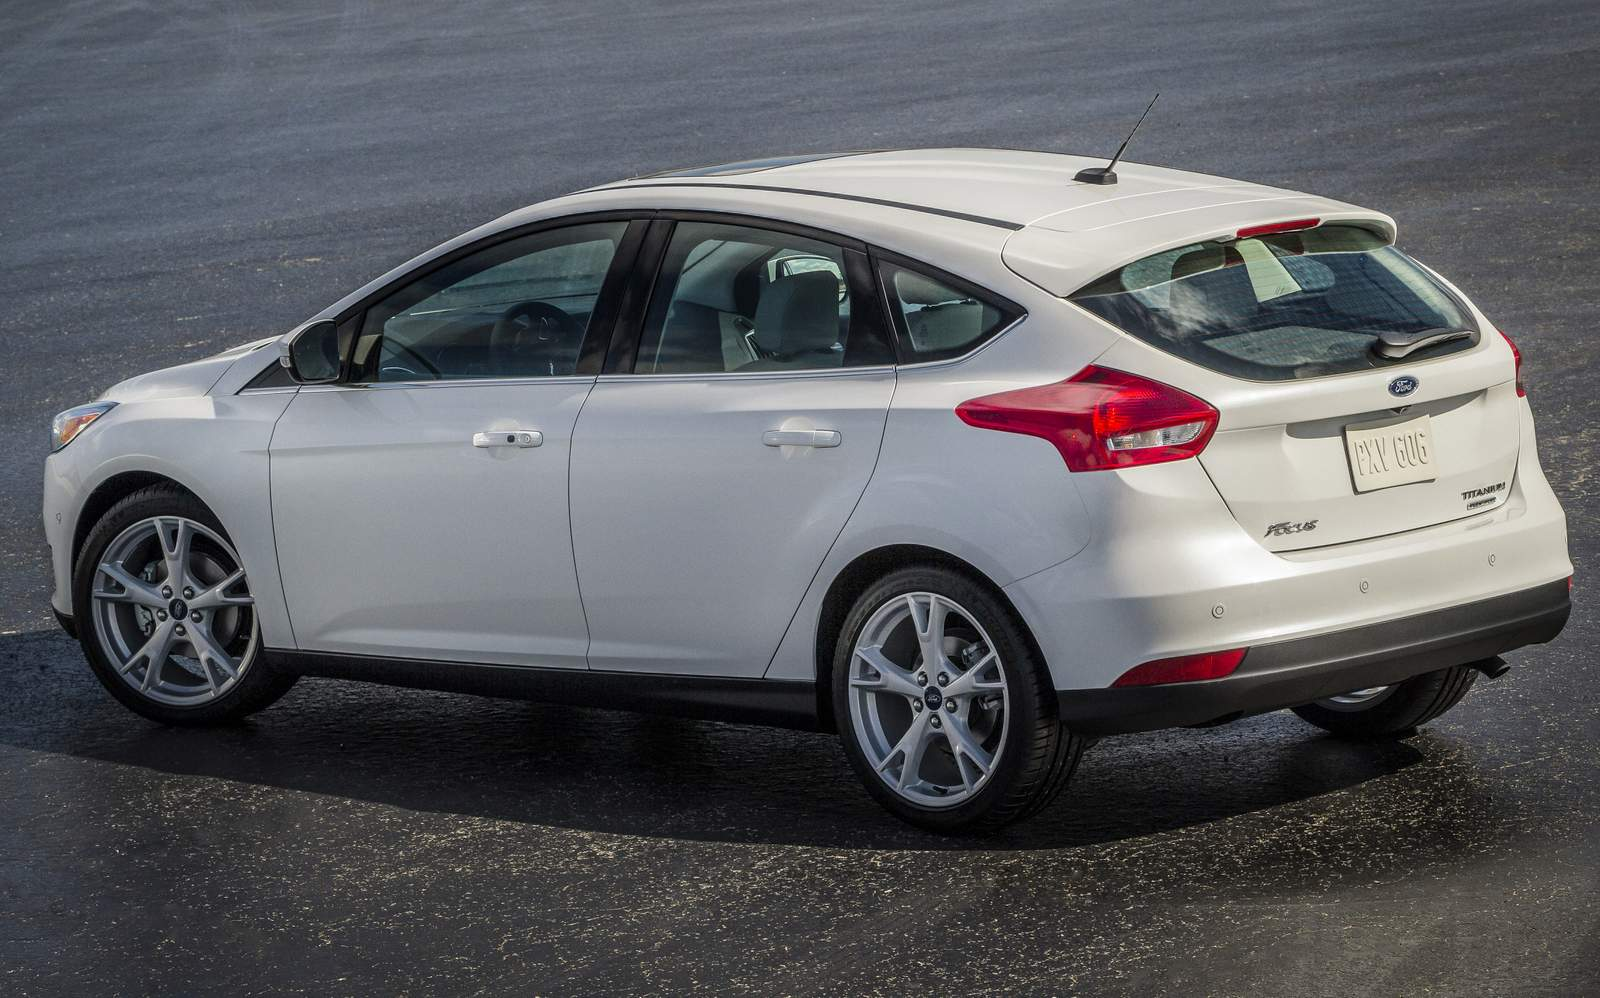 Novo Focus Hatch 2015 - traseira